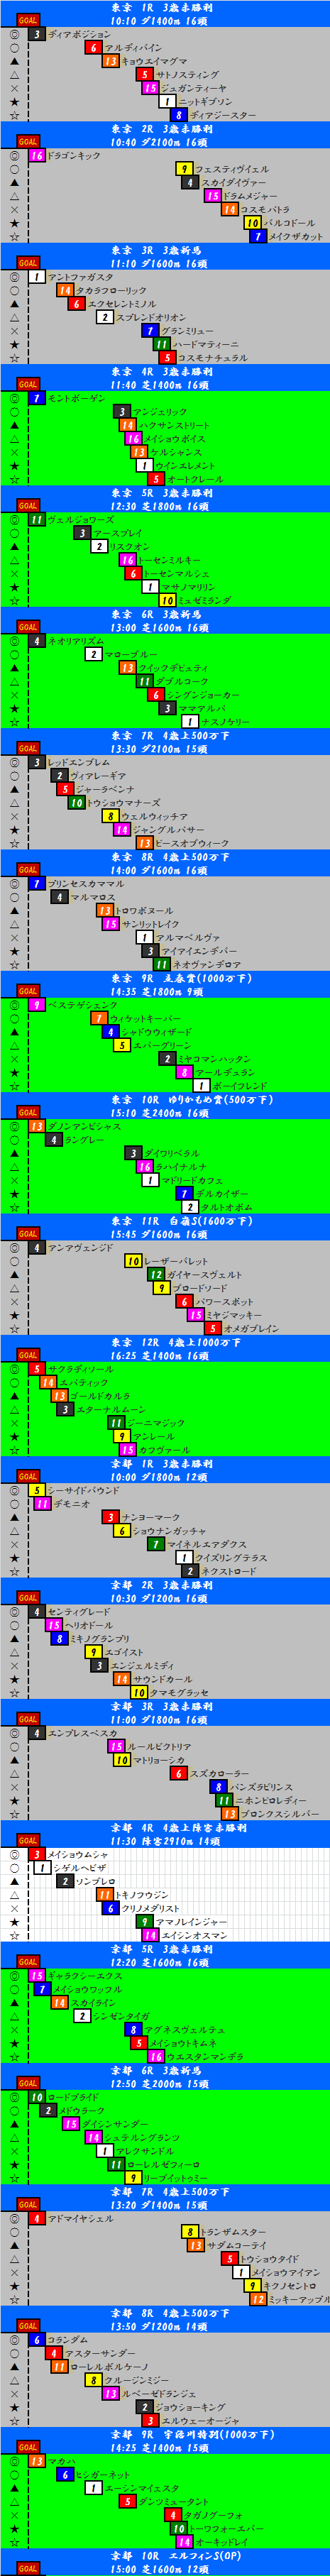 201402081.png